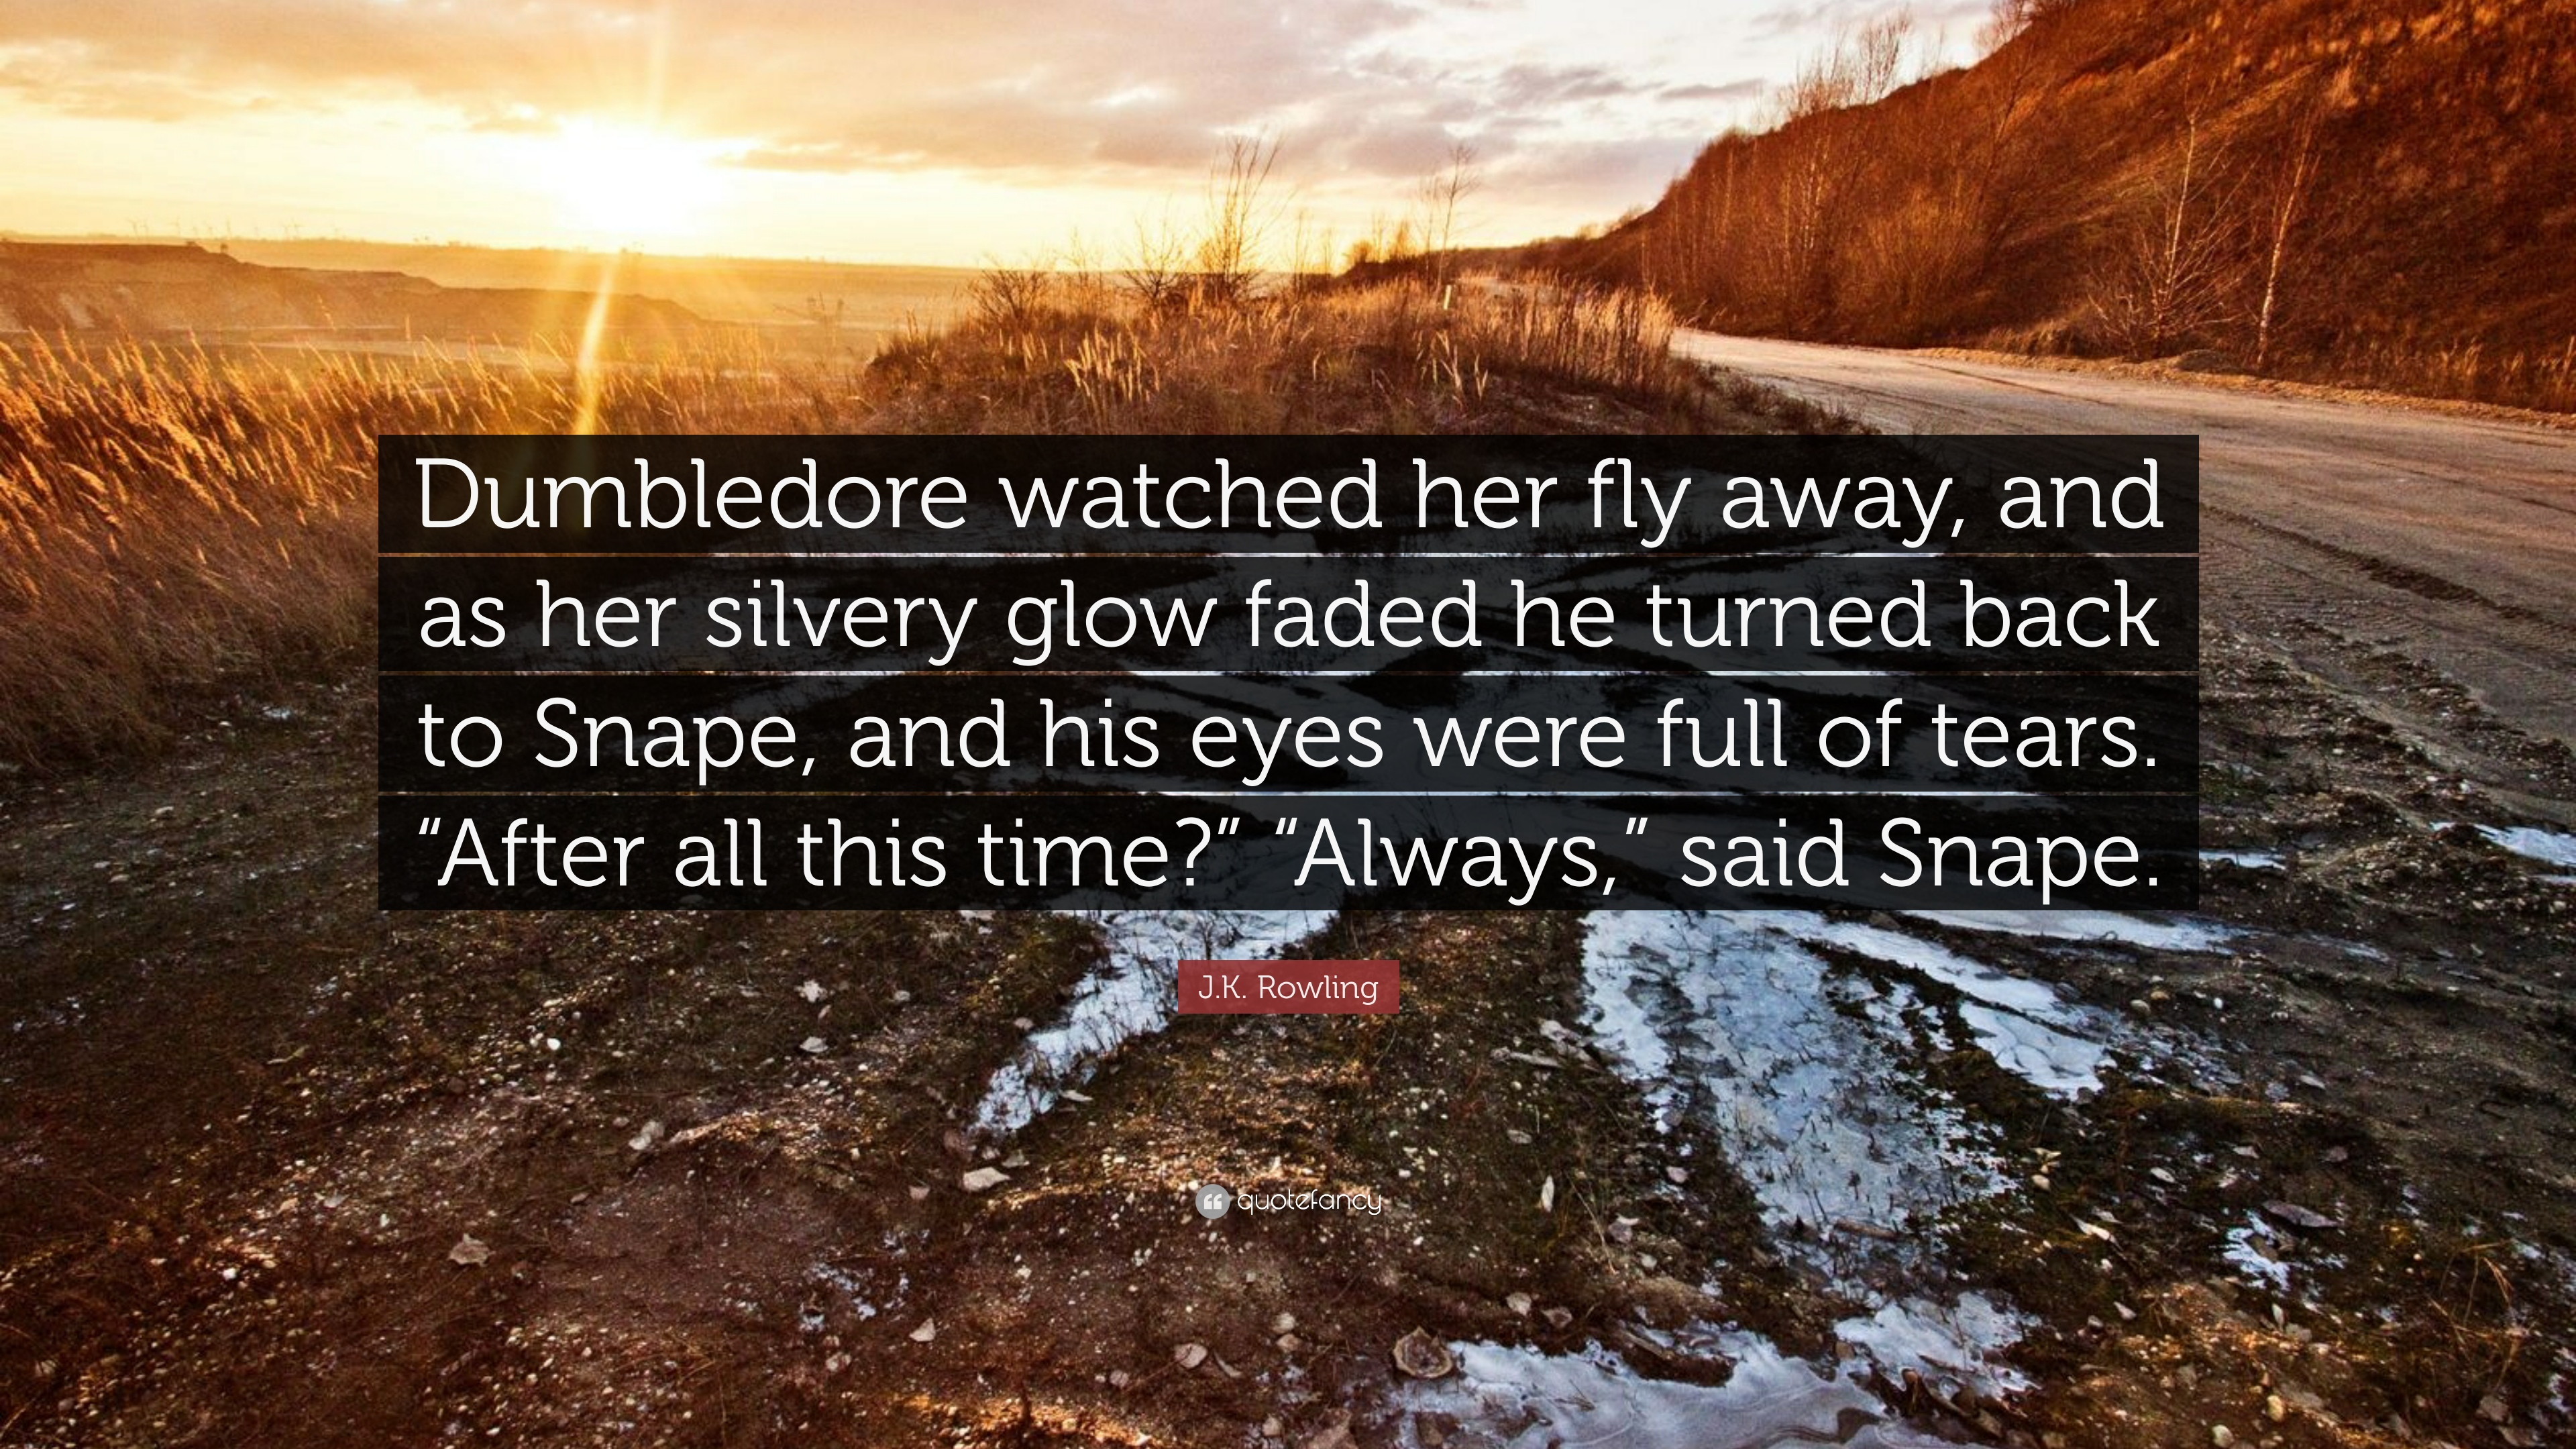 Jk Rowling Quote Dumbledore Watched Her Fly Away And As